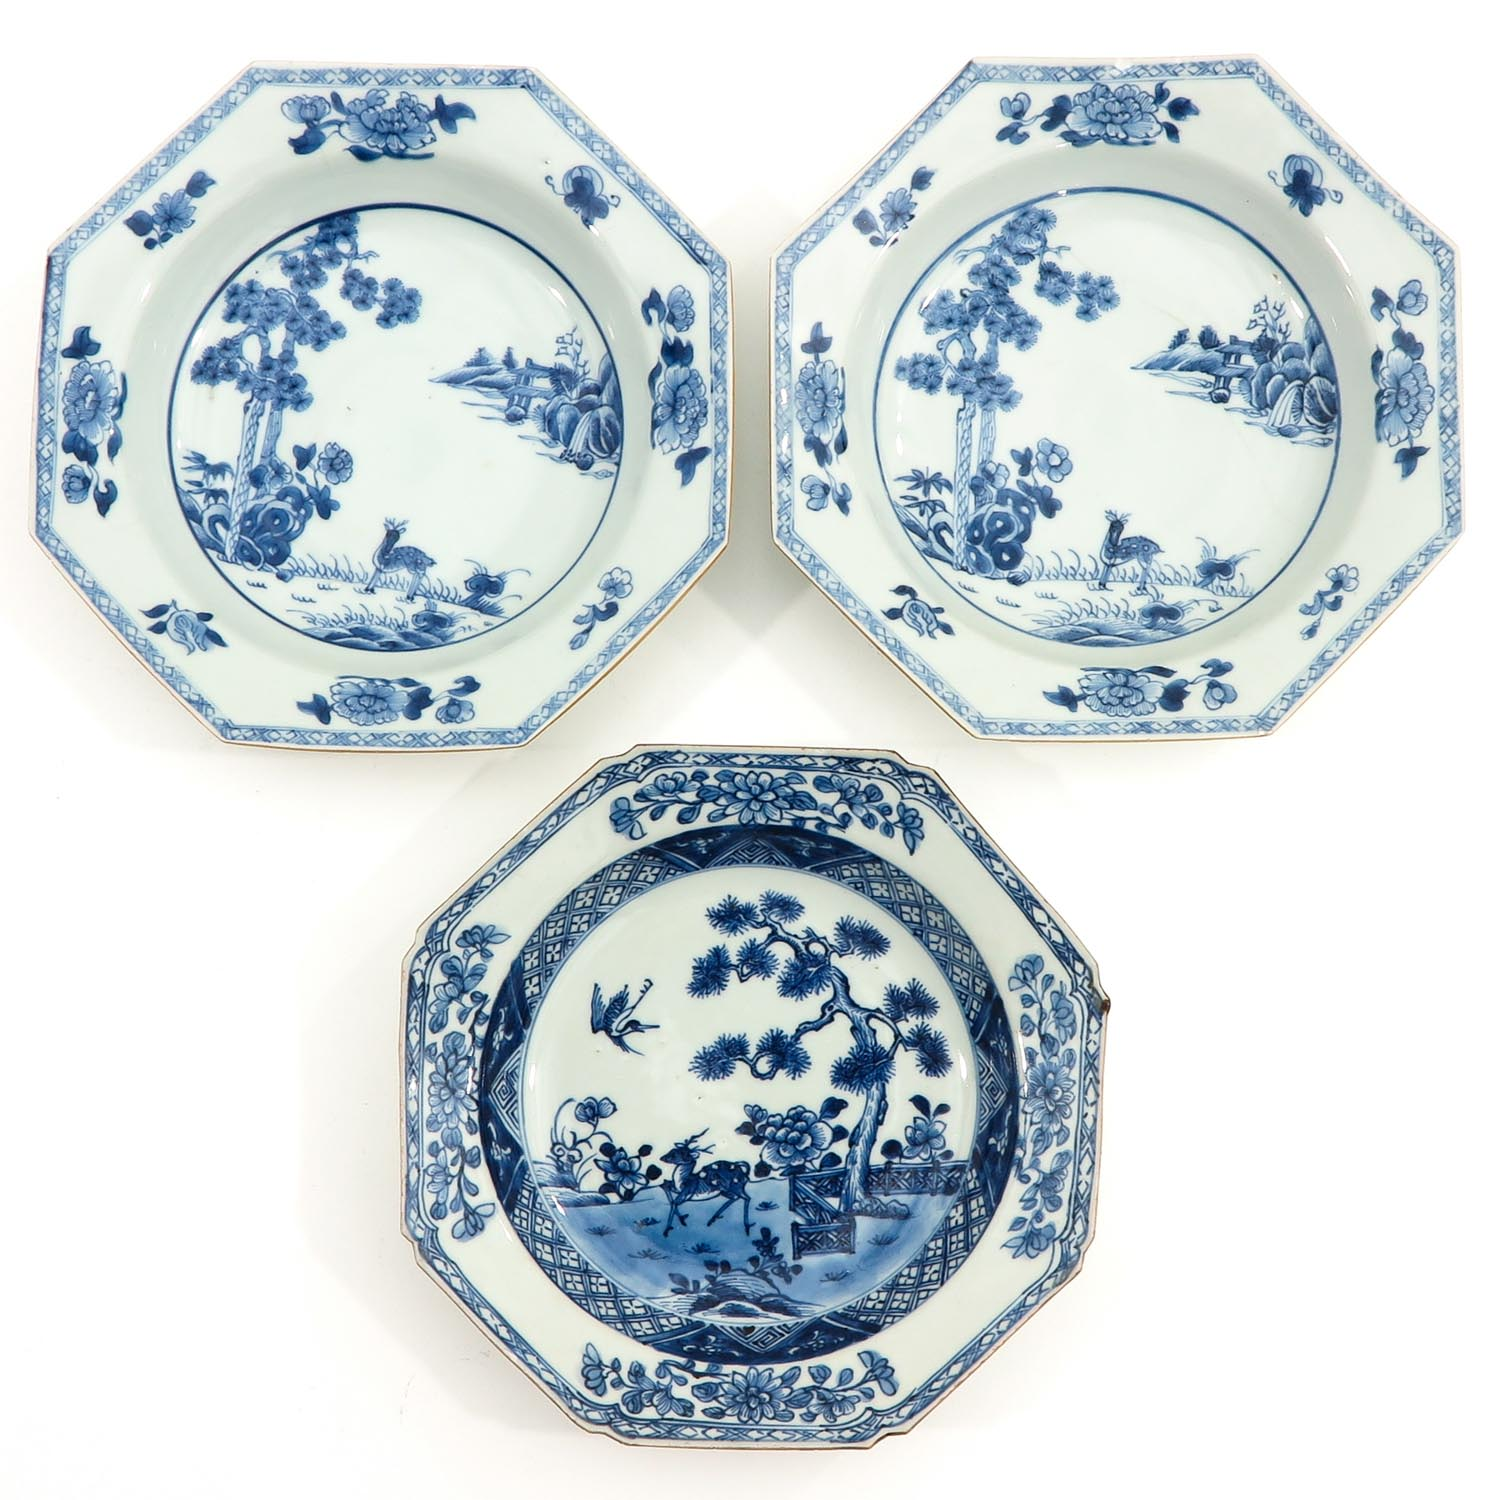 A Series of 3 Blue and White Plates